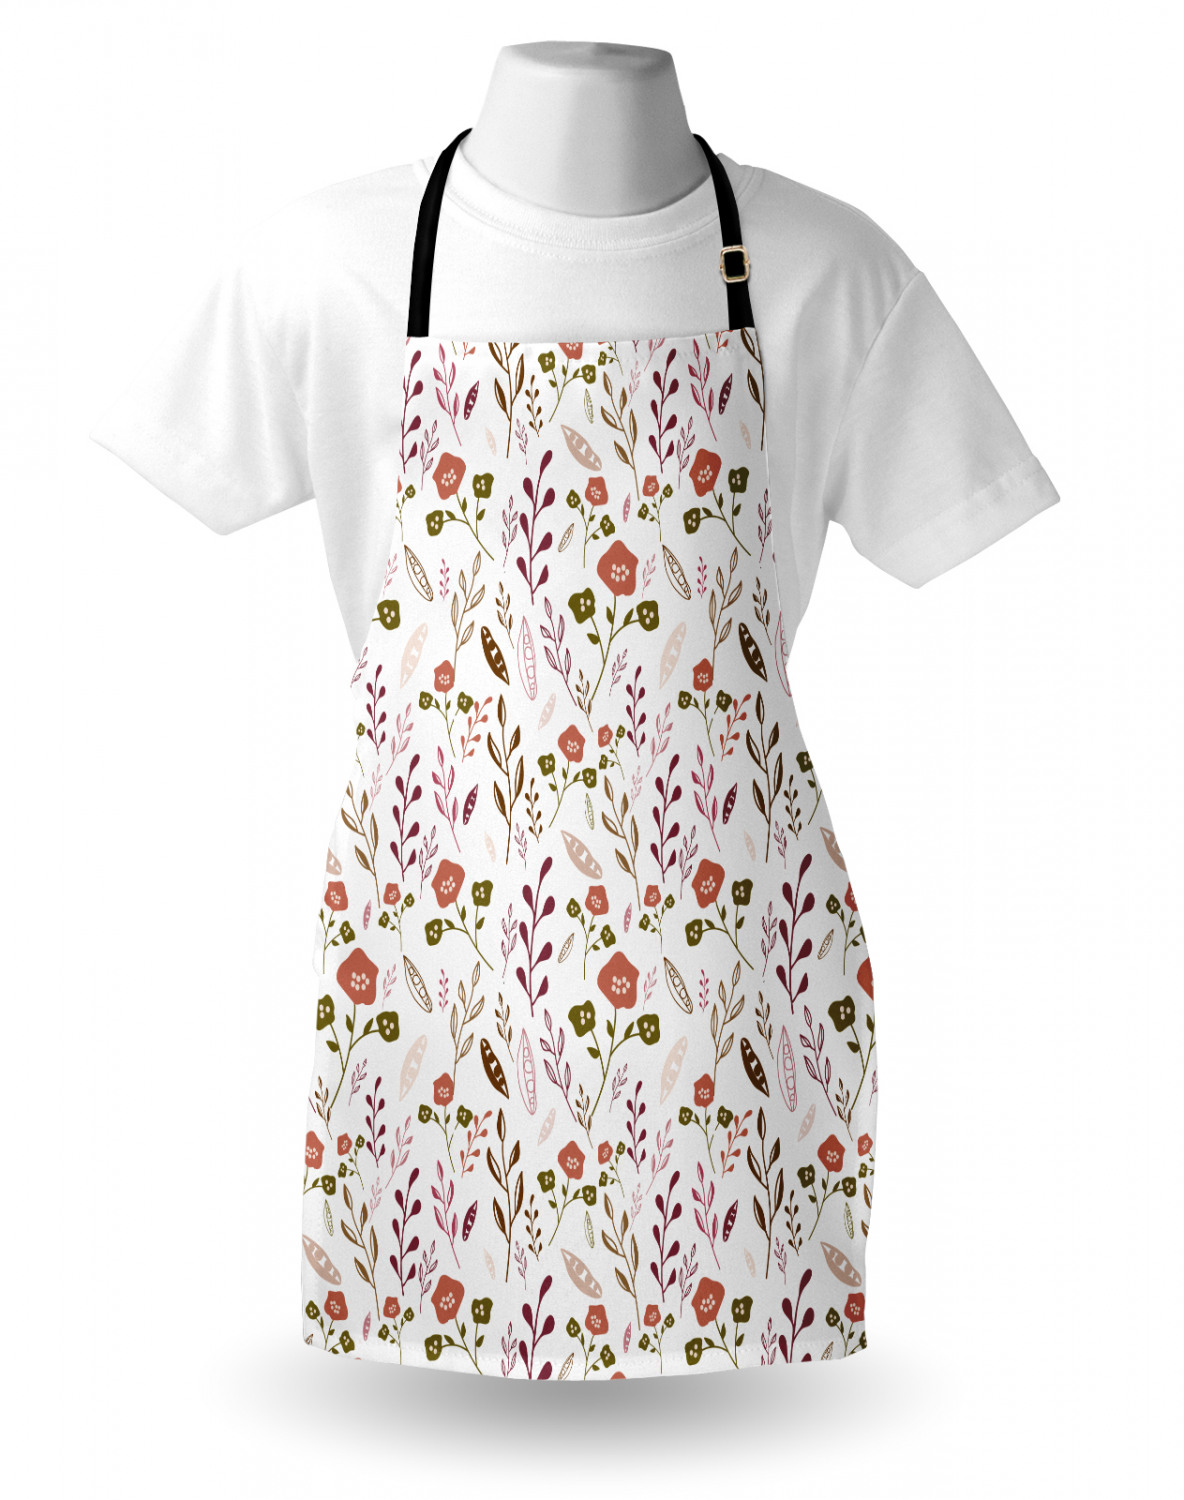 Ambesonne-Outdoor-Use-Apron-with-Adjustable-Neck-Strap-for-Gardening-and-Cooking miniatura 147